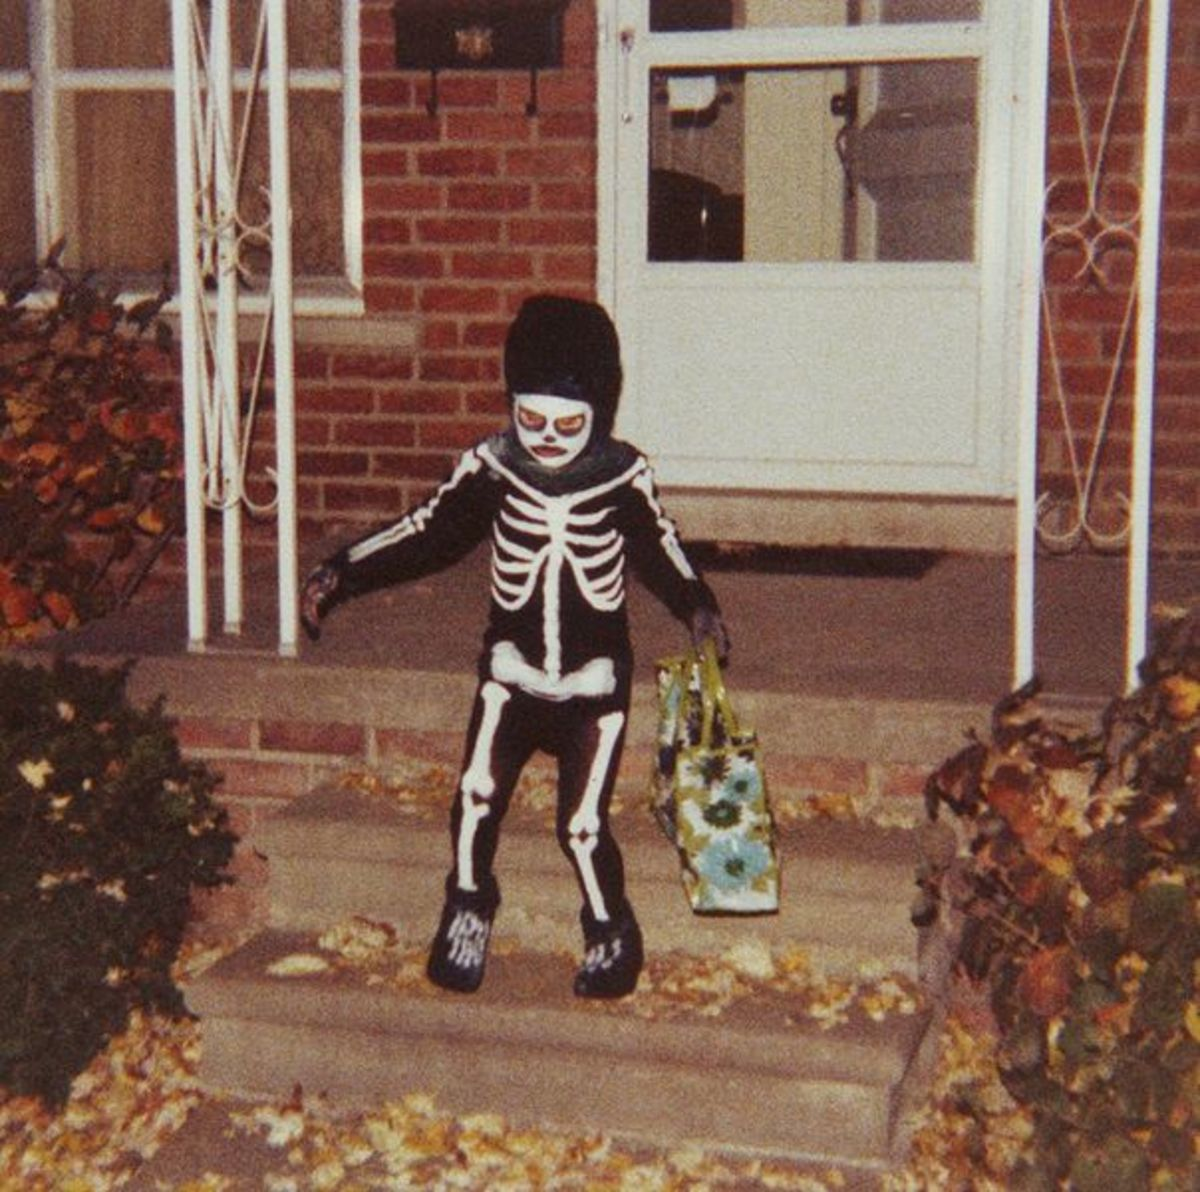 Trick-or-treater in Redford, MI.